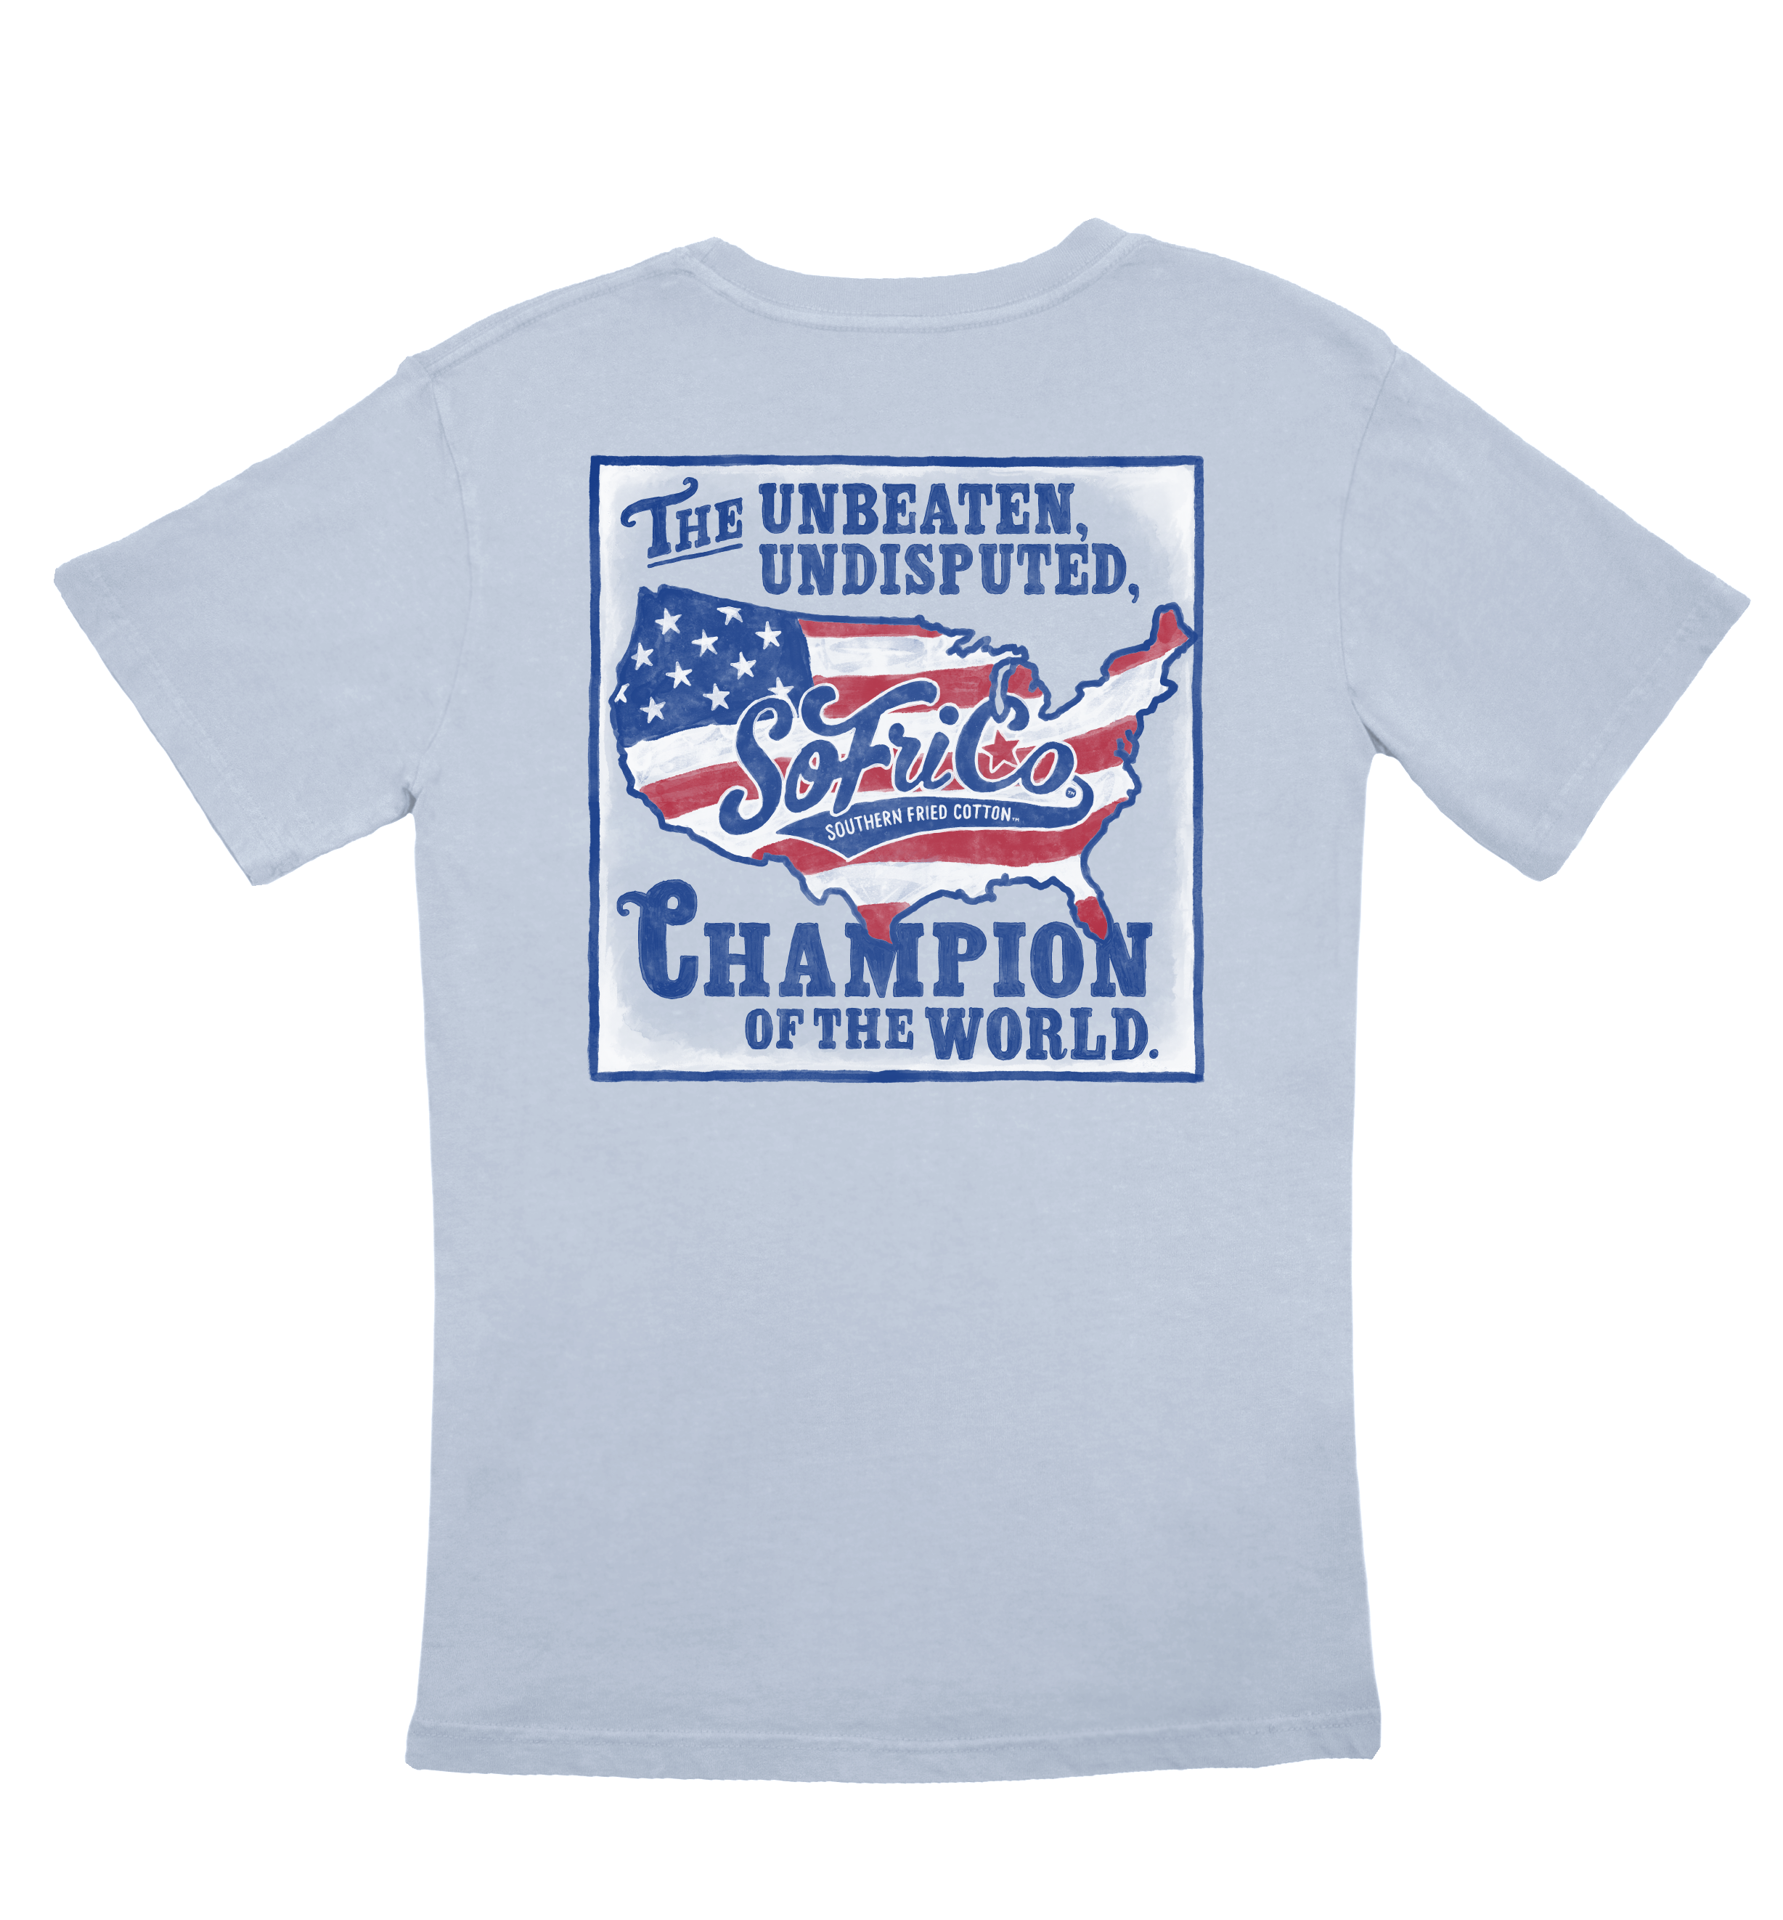 Southern Fried Cotton Champion Of The World